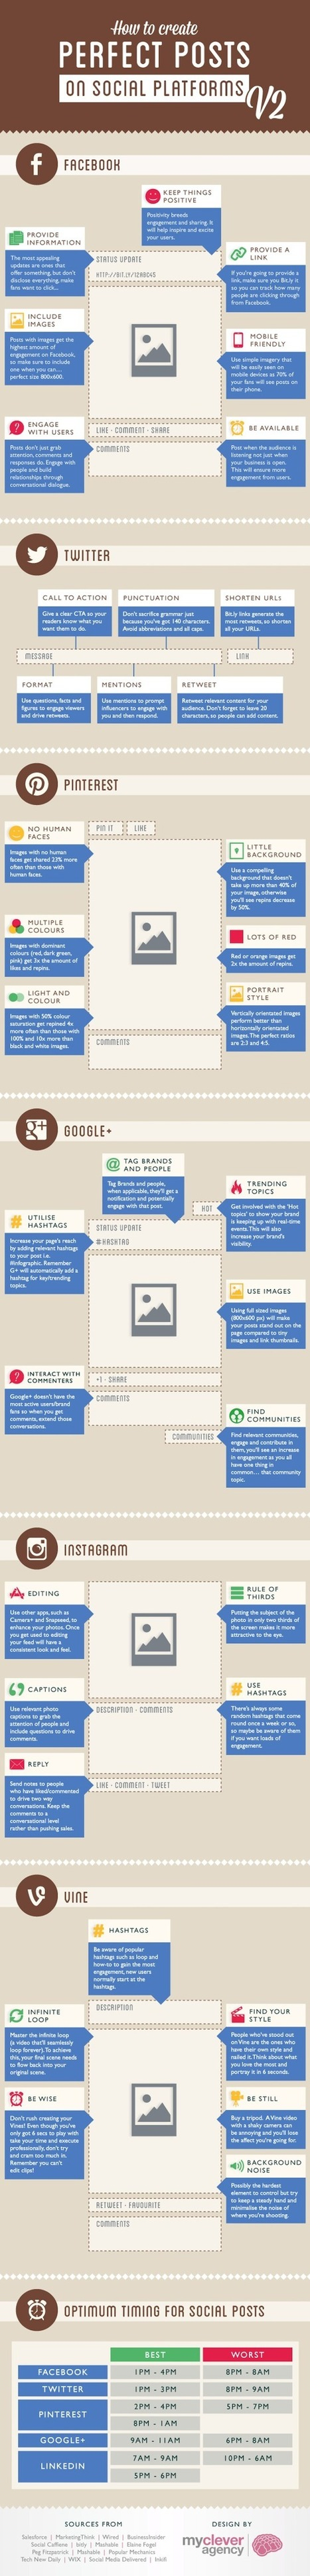 The Guide to Perfect Social Network Posting [Infographic] - Brandwatch | HadeMade Trends | Scoop.it